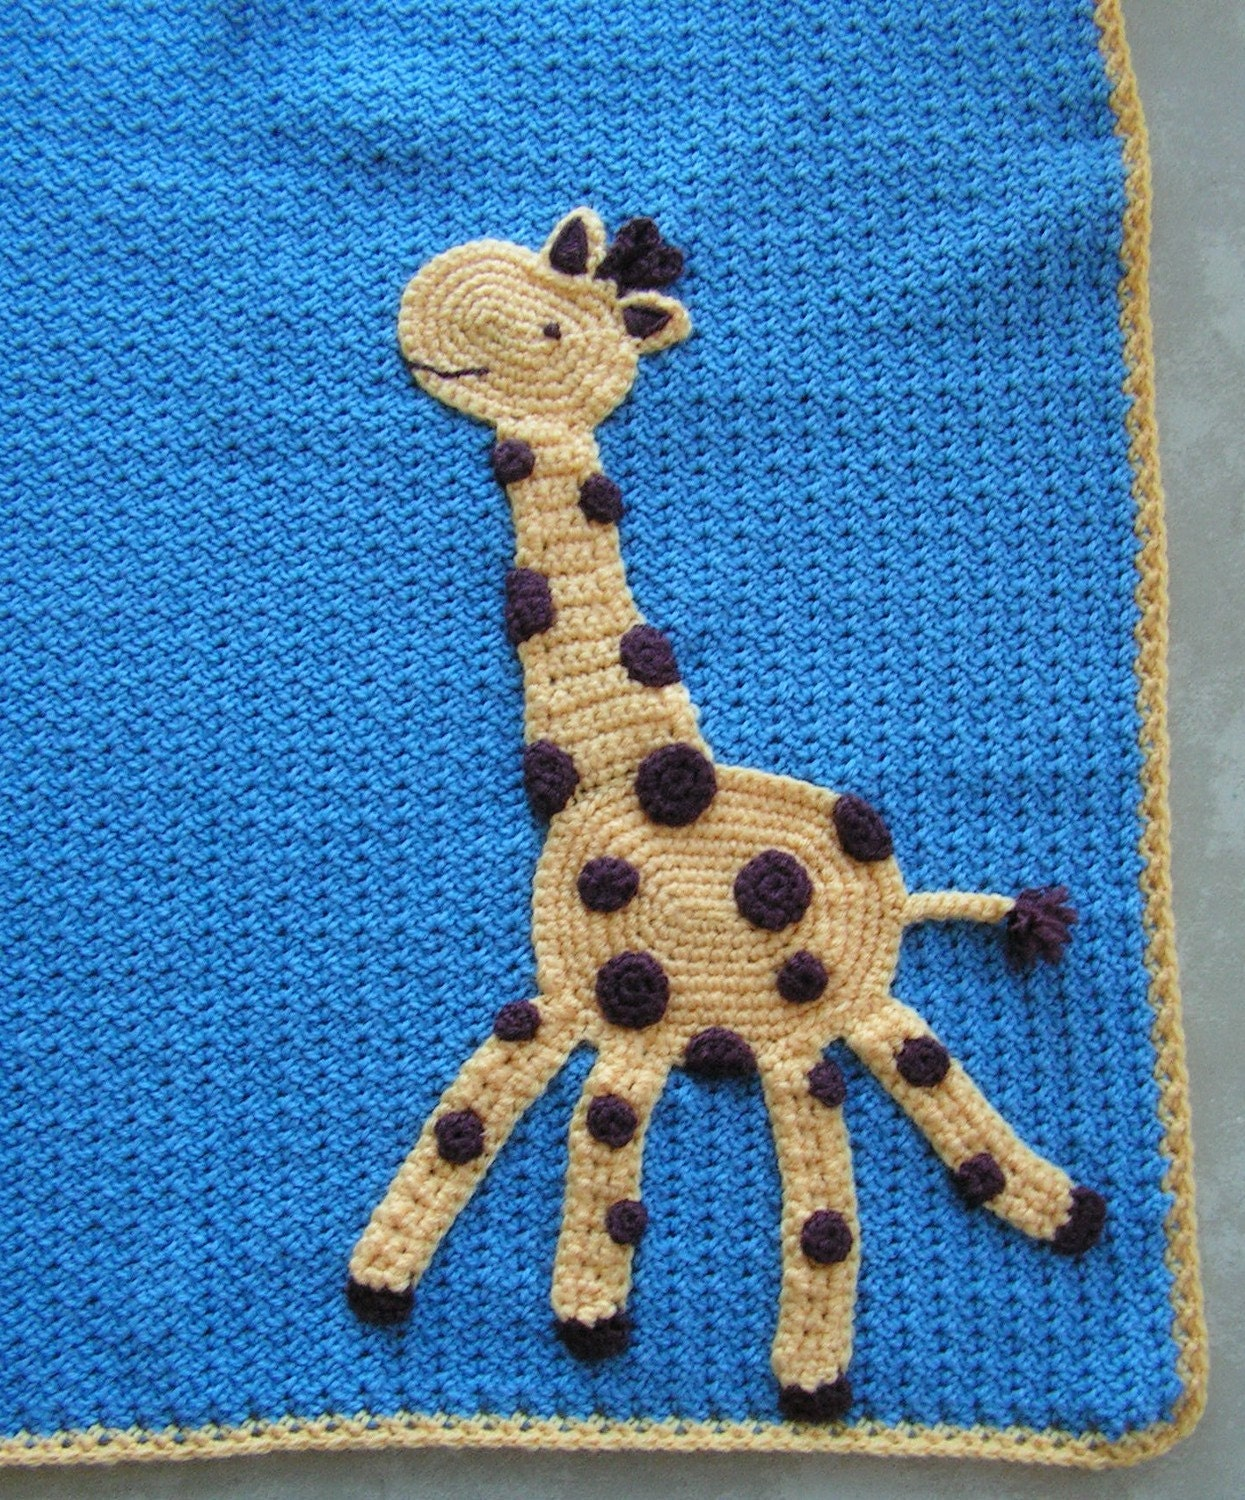 Crocheted Giraffe Baby Blanket